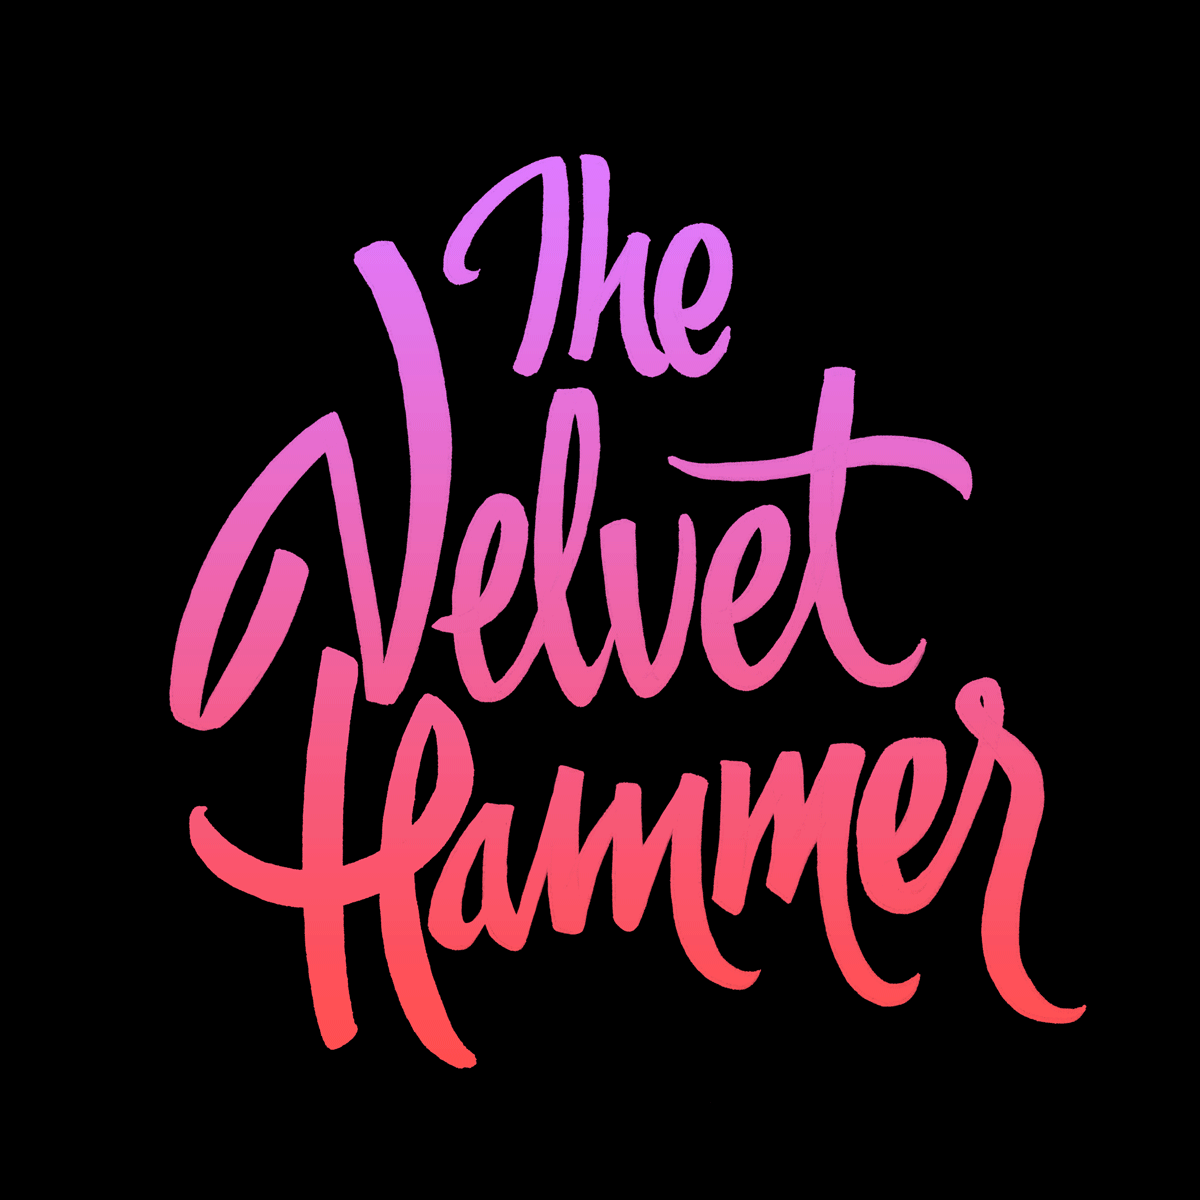 209-The-Velvet-Hammer.png